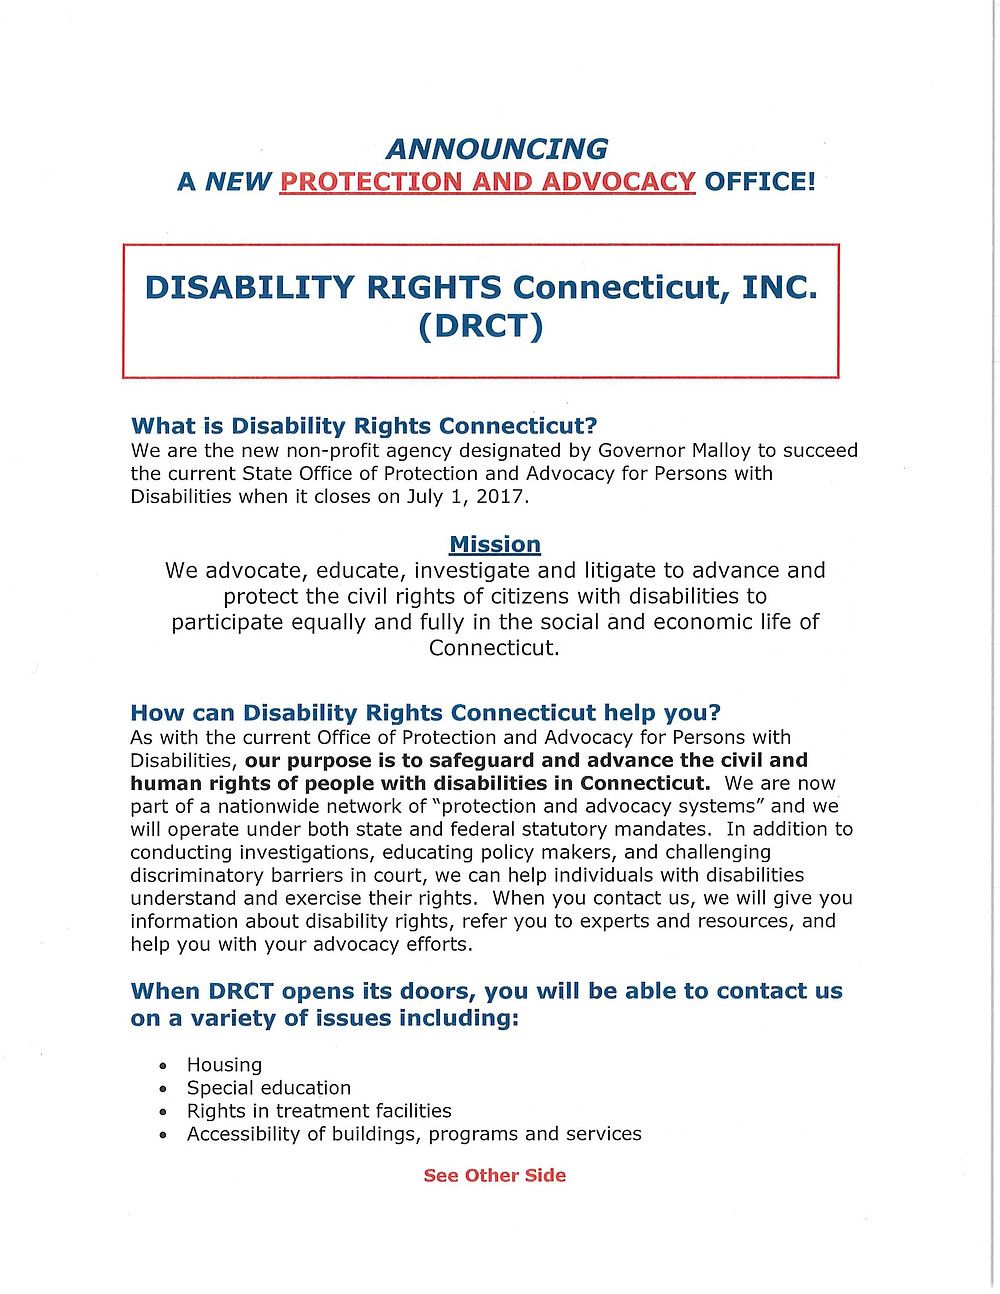 Disability Rights CT flyer